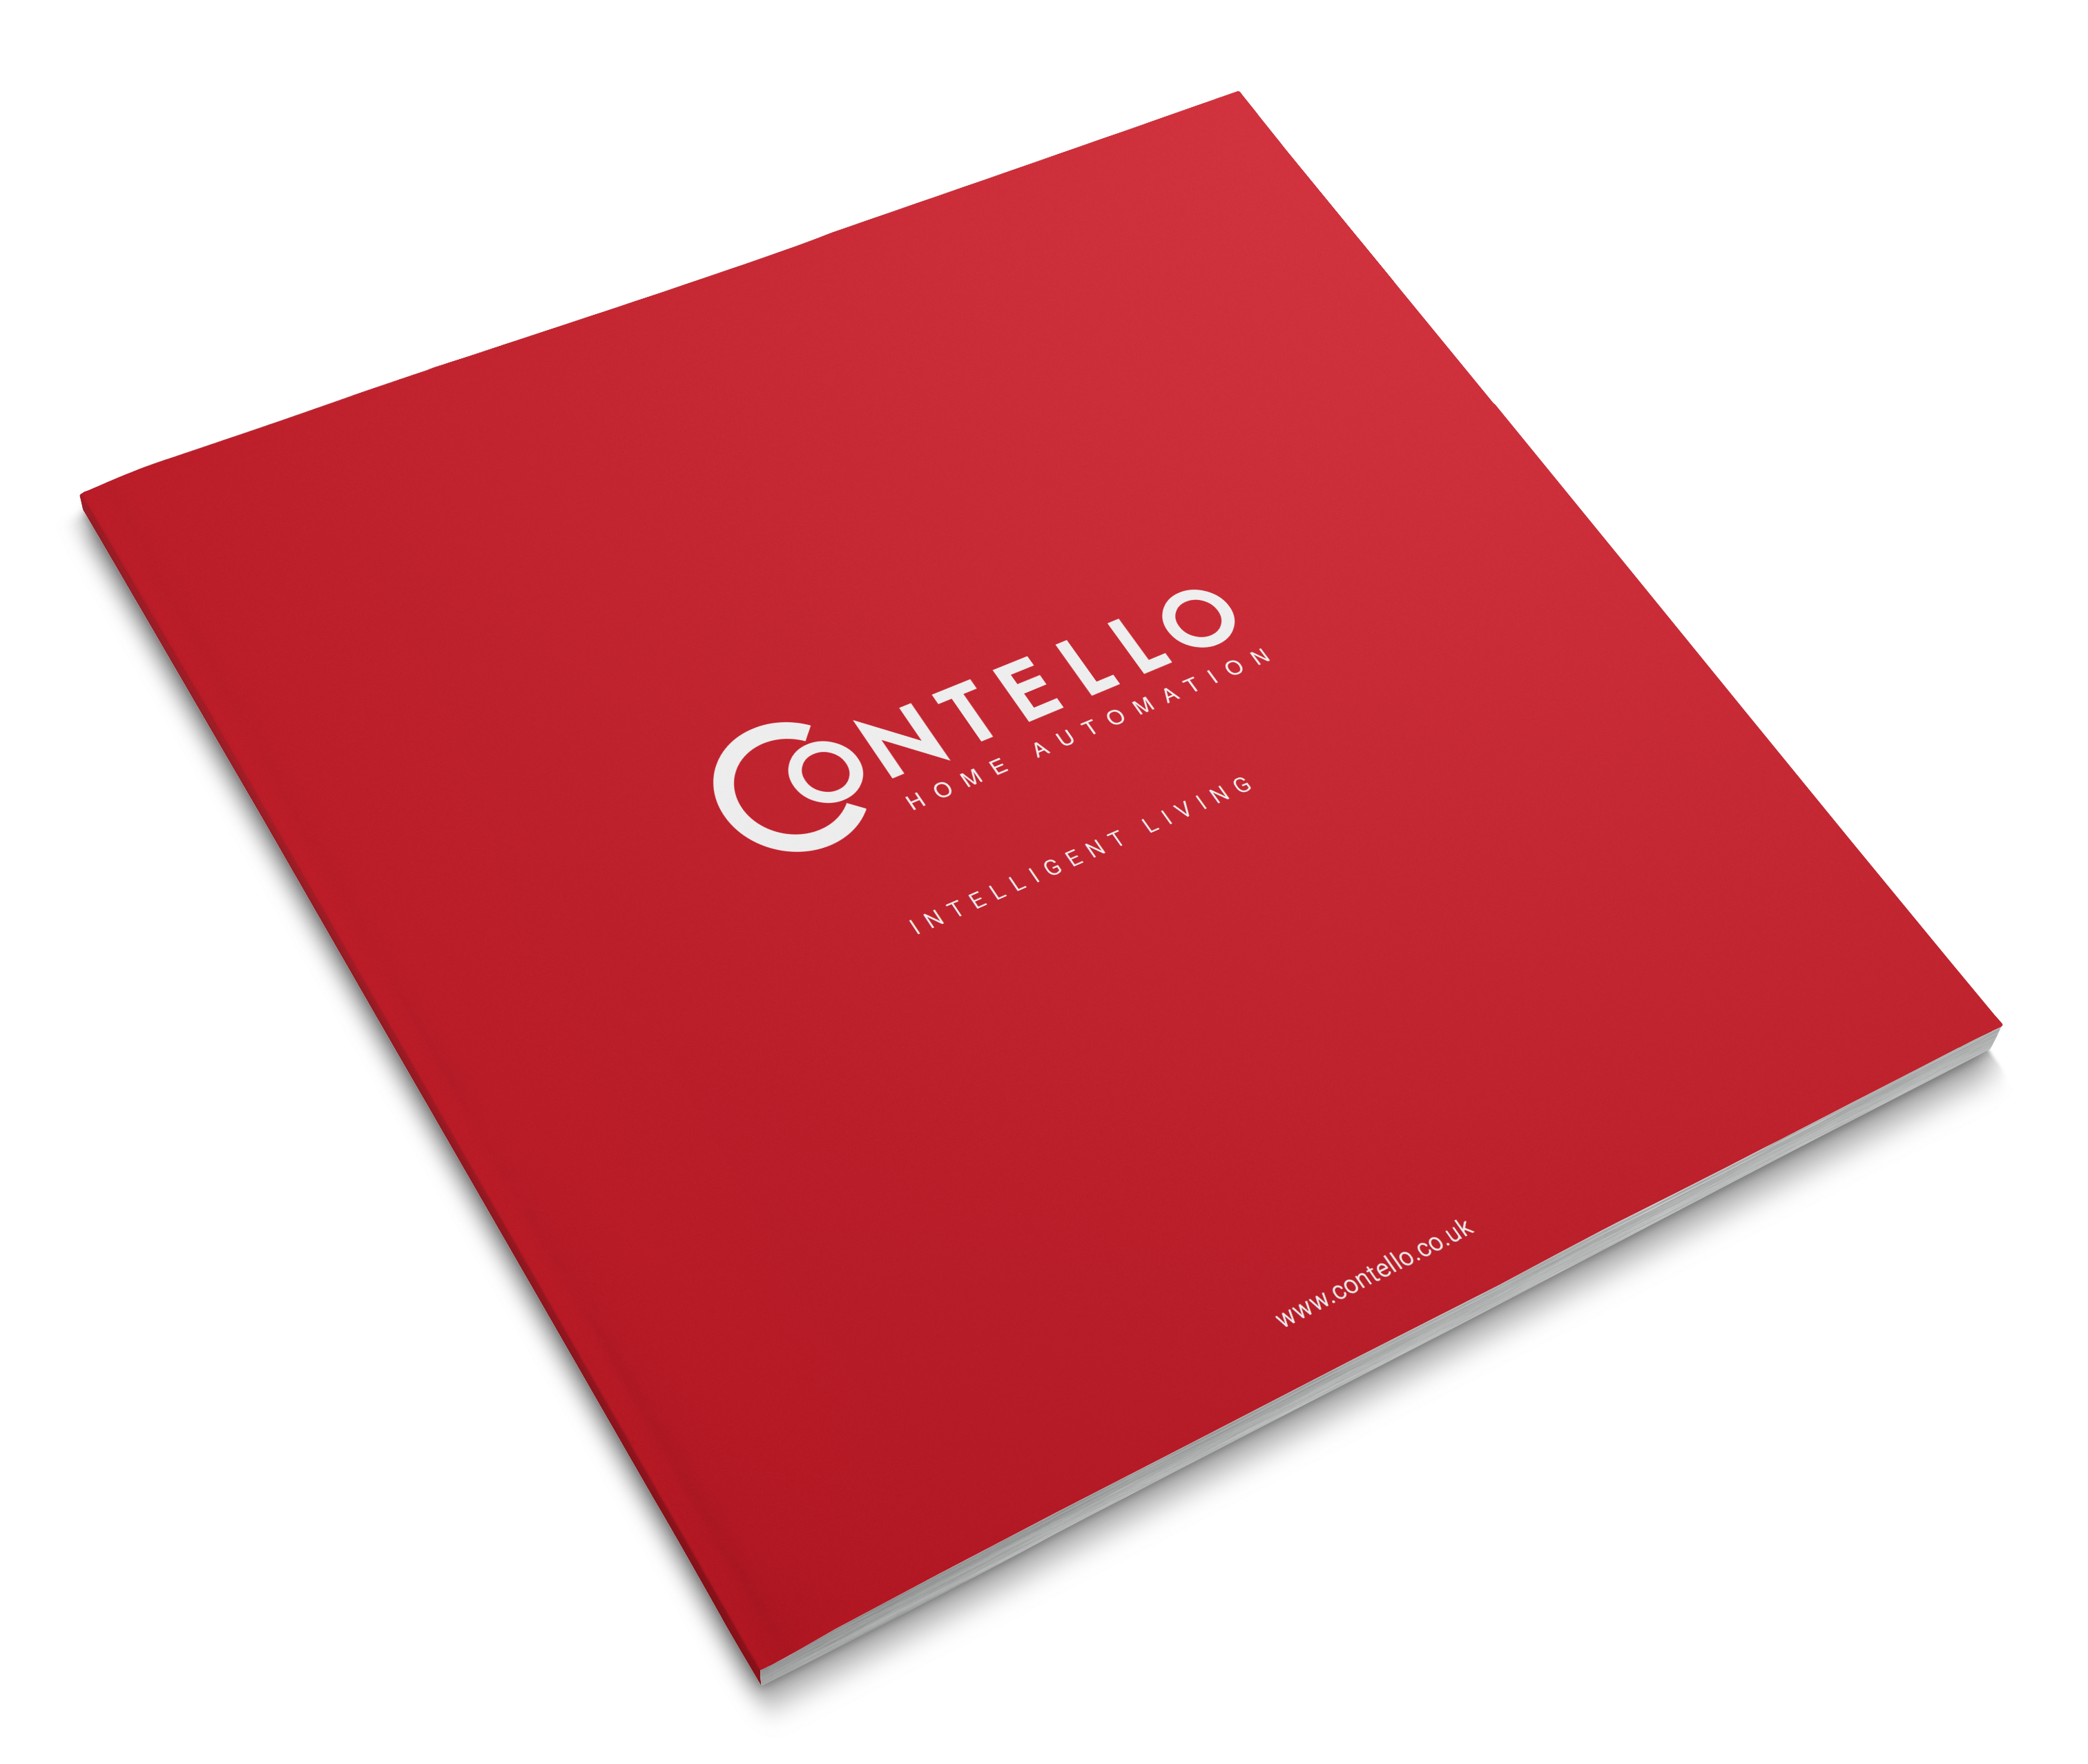 Contello Home Automation - website & branding - eighty3creative